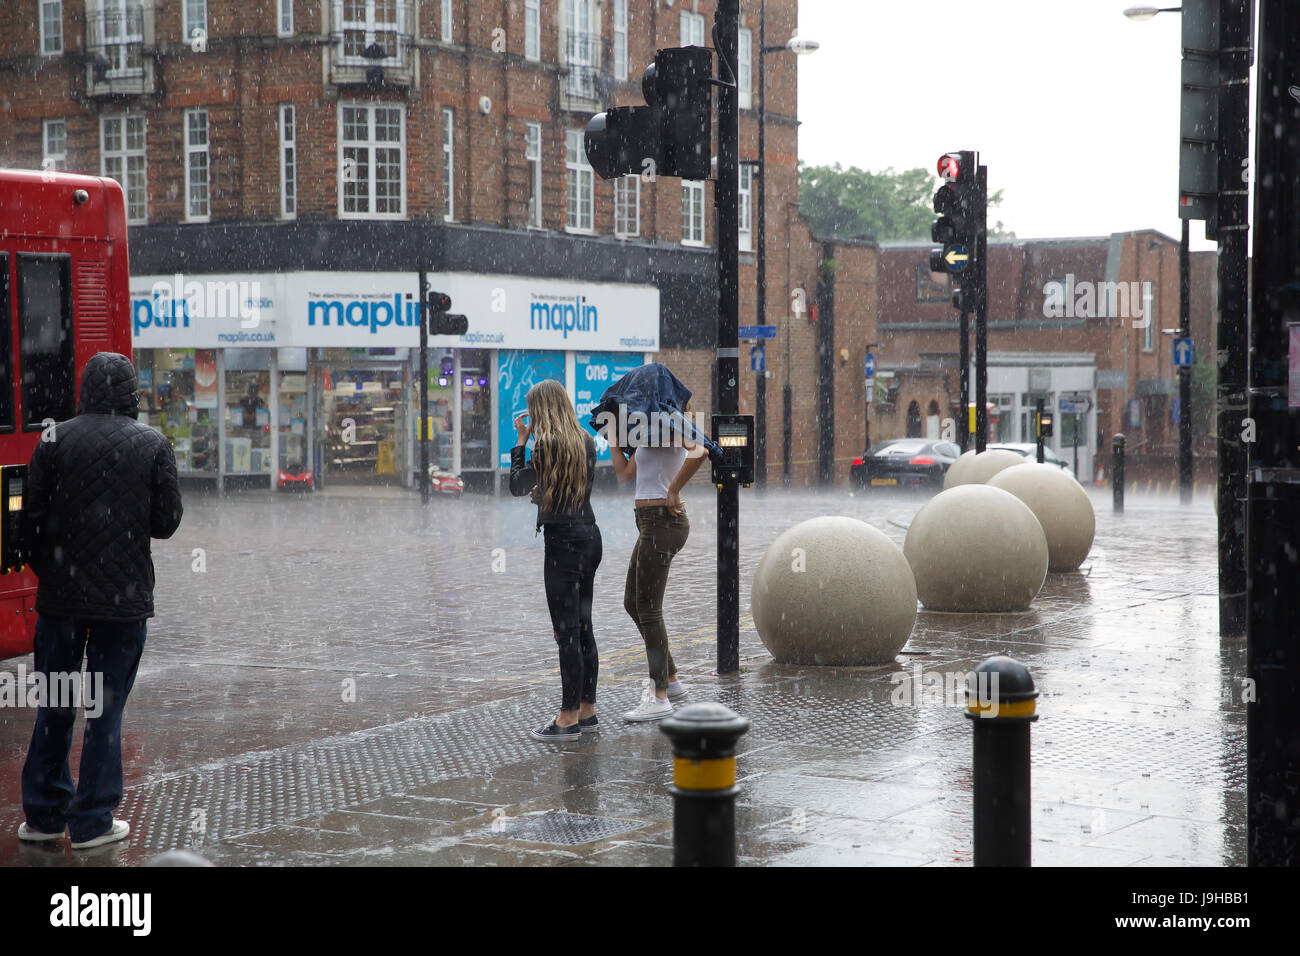 Bromley, UK. 2nd June, 2017. After glorious sunshine this week during half term, Heavy Rainfall sent people running - Stock Image